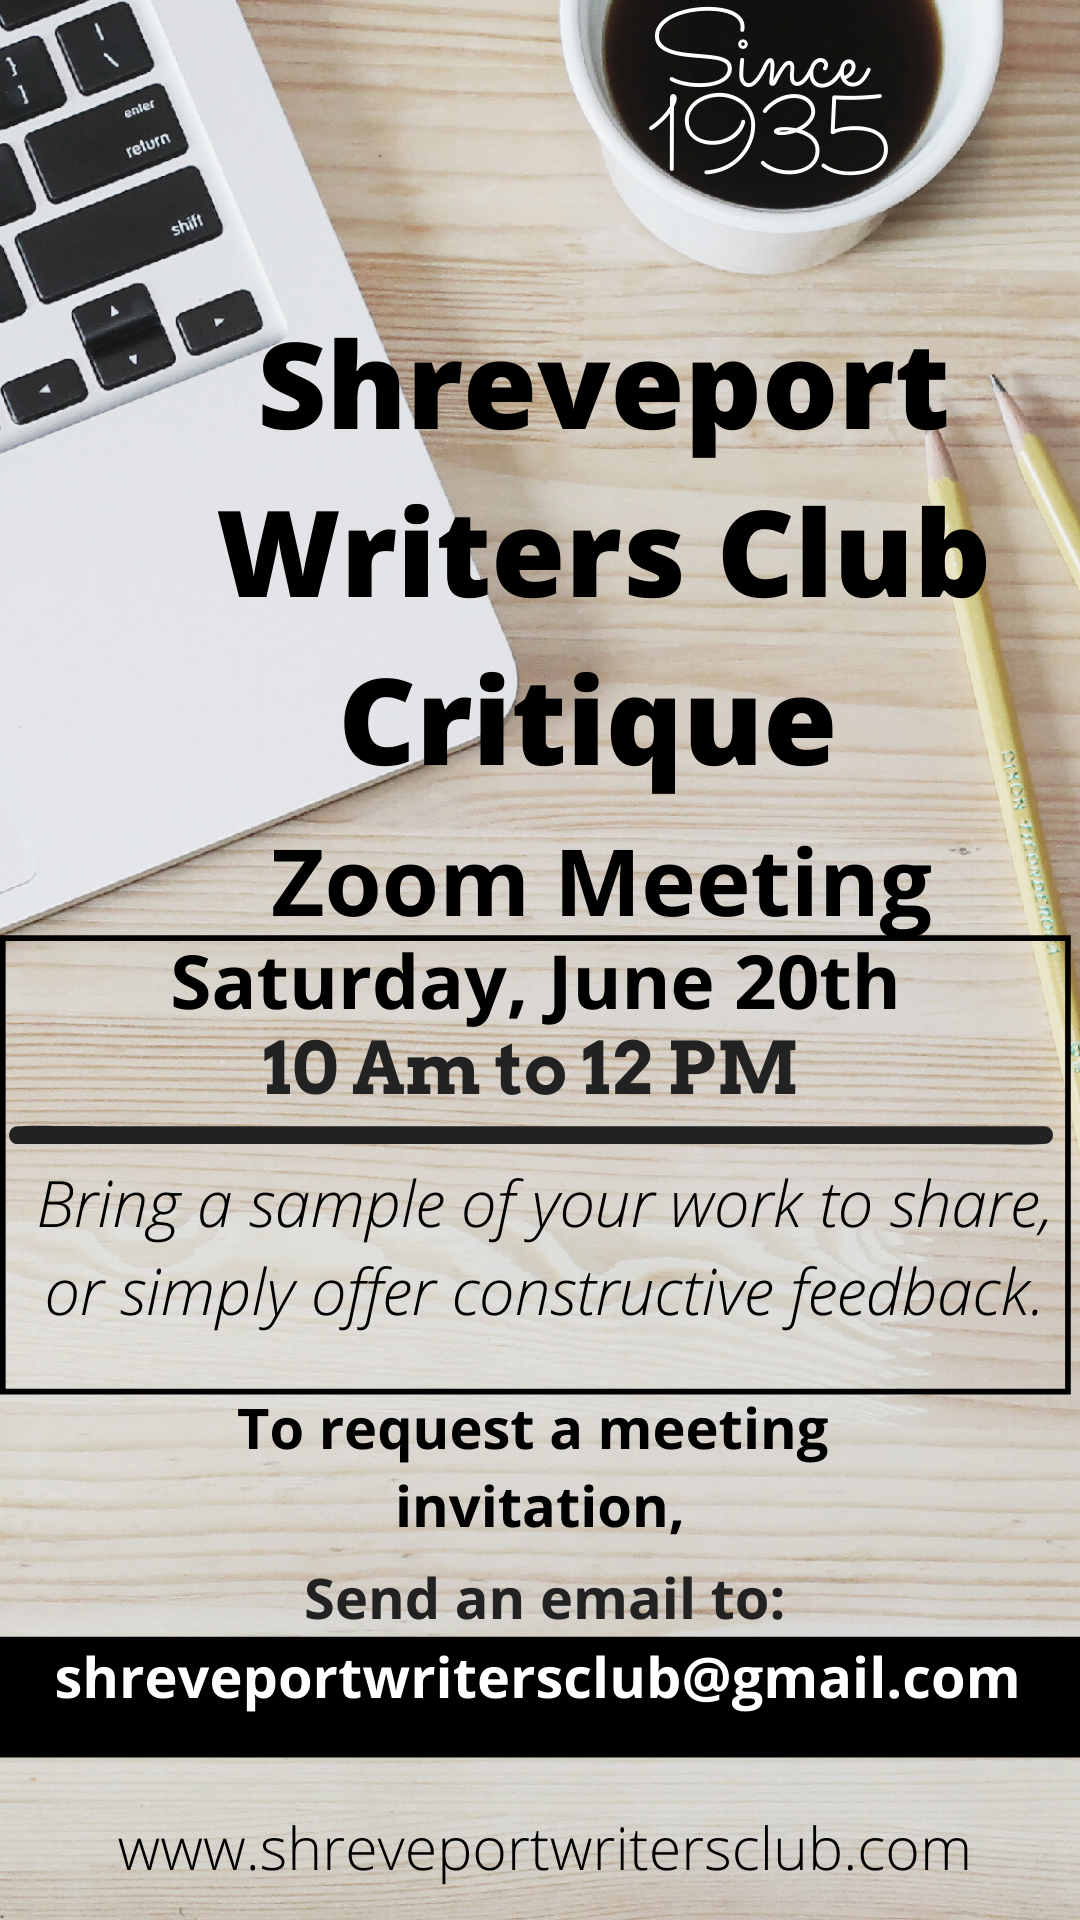 Shreveport Writers Club Critique (1)